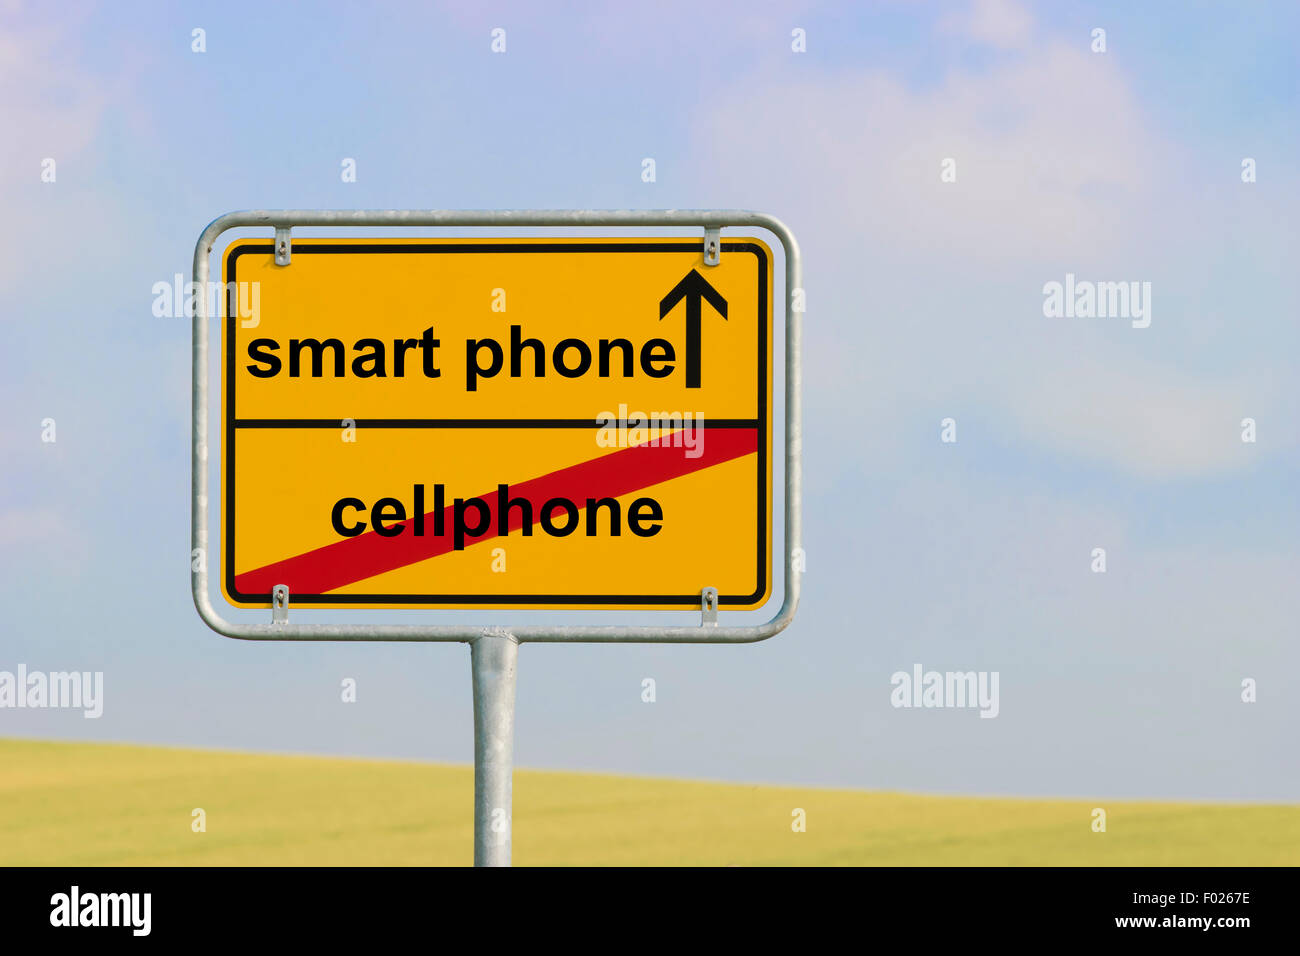 Yellow town sign with text 'cellphone smart phone' - Stock Image